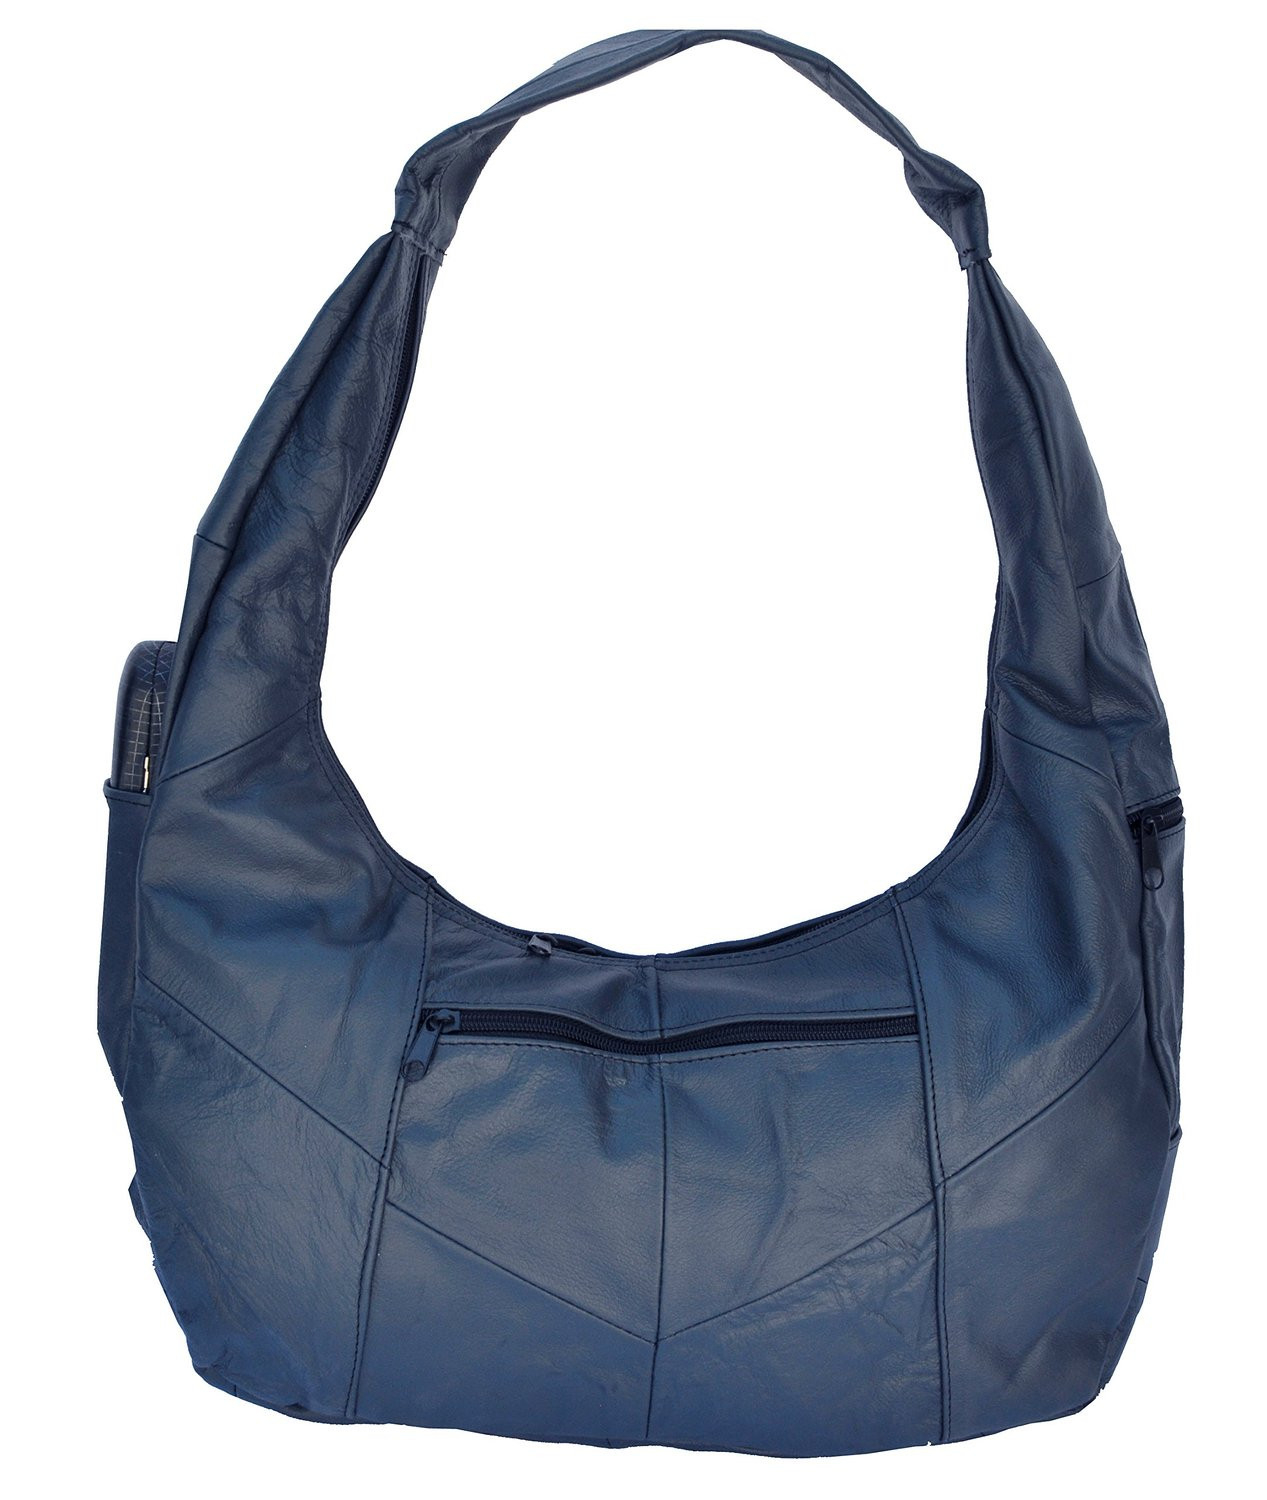 Large Mexican Leather Hobo Style Purse - Blue (AFONiE) photo